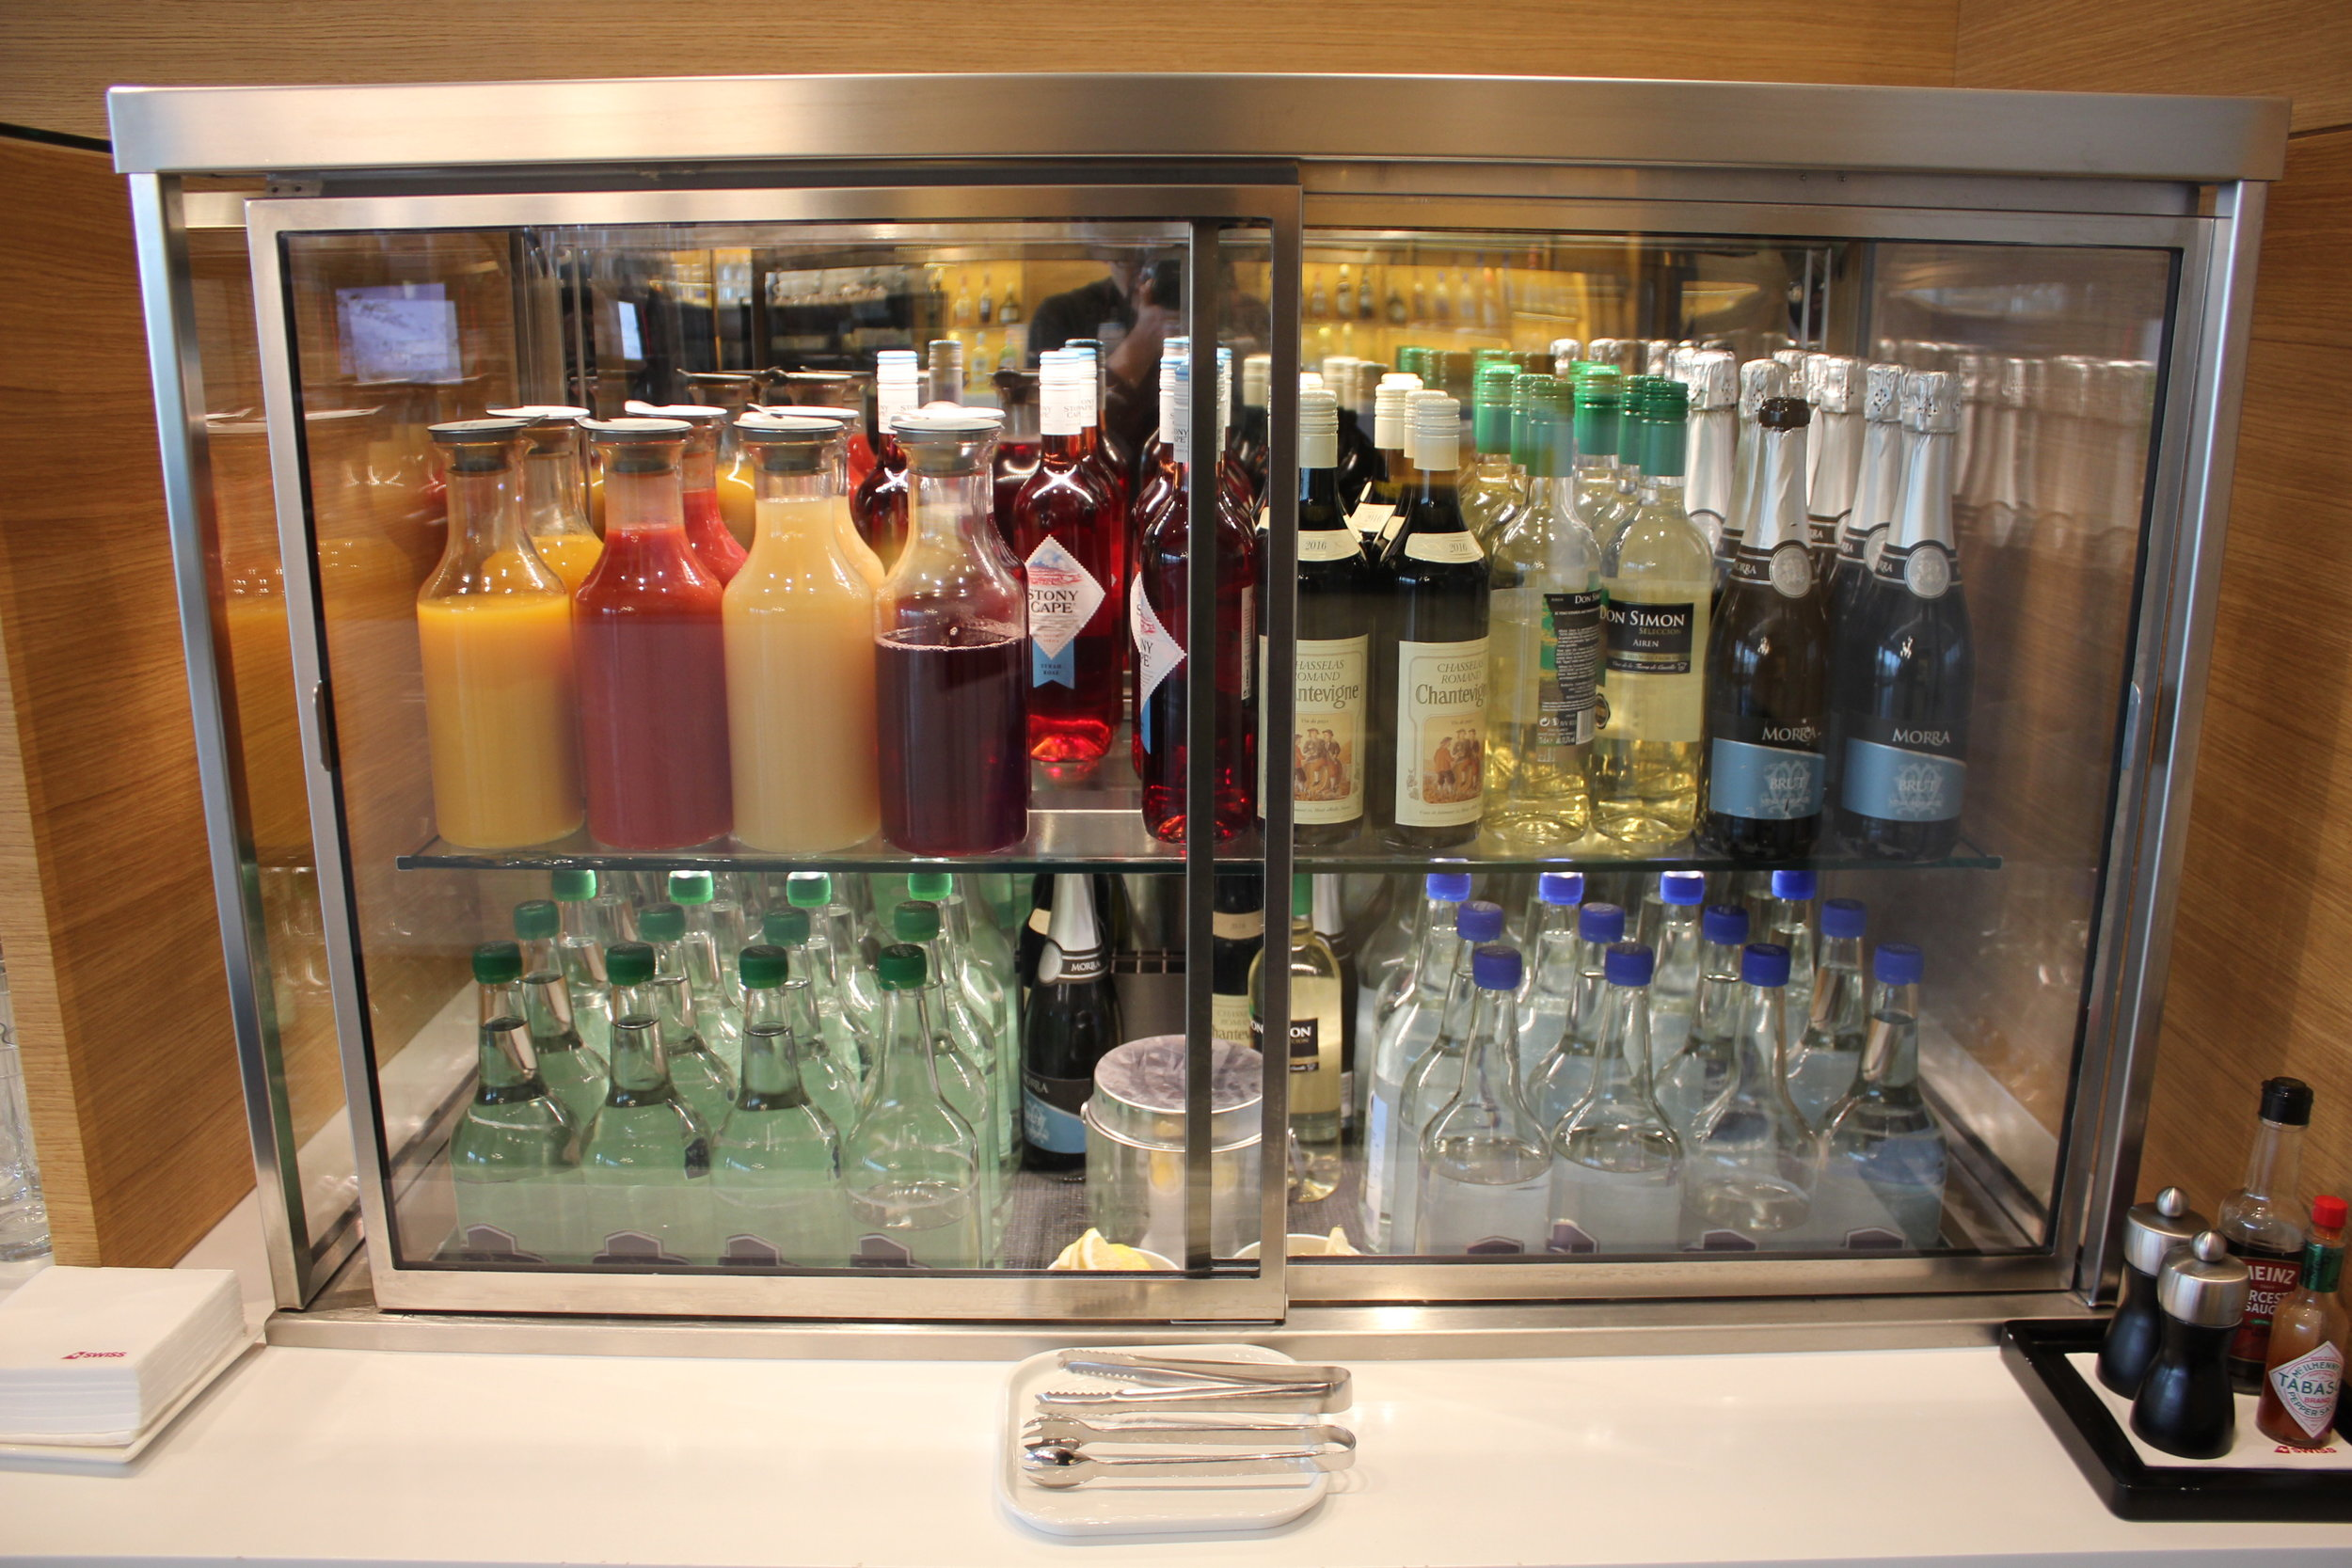 Swiss Senator Lounge Zurich – Drinks